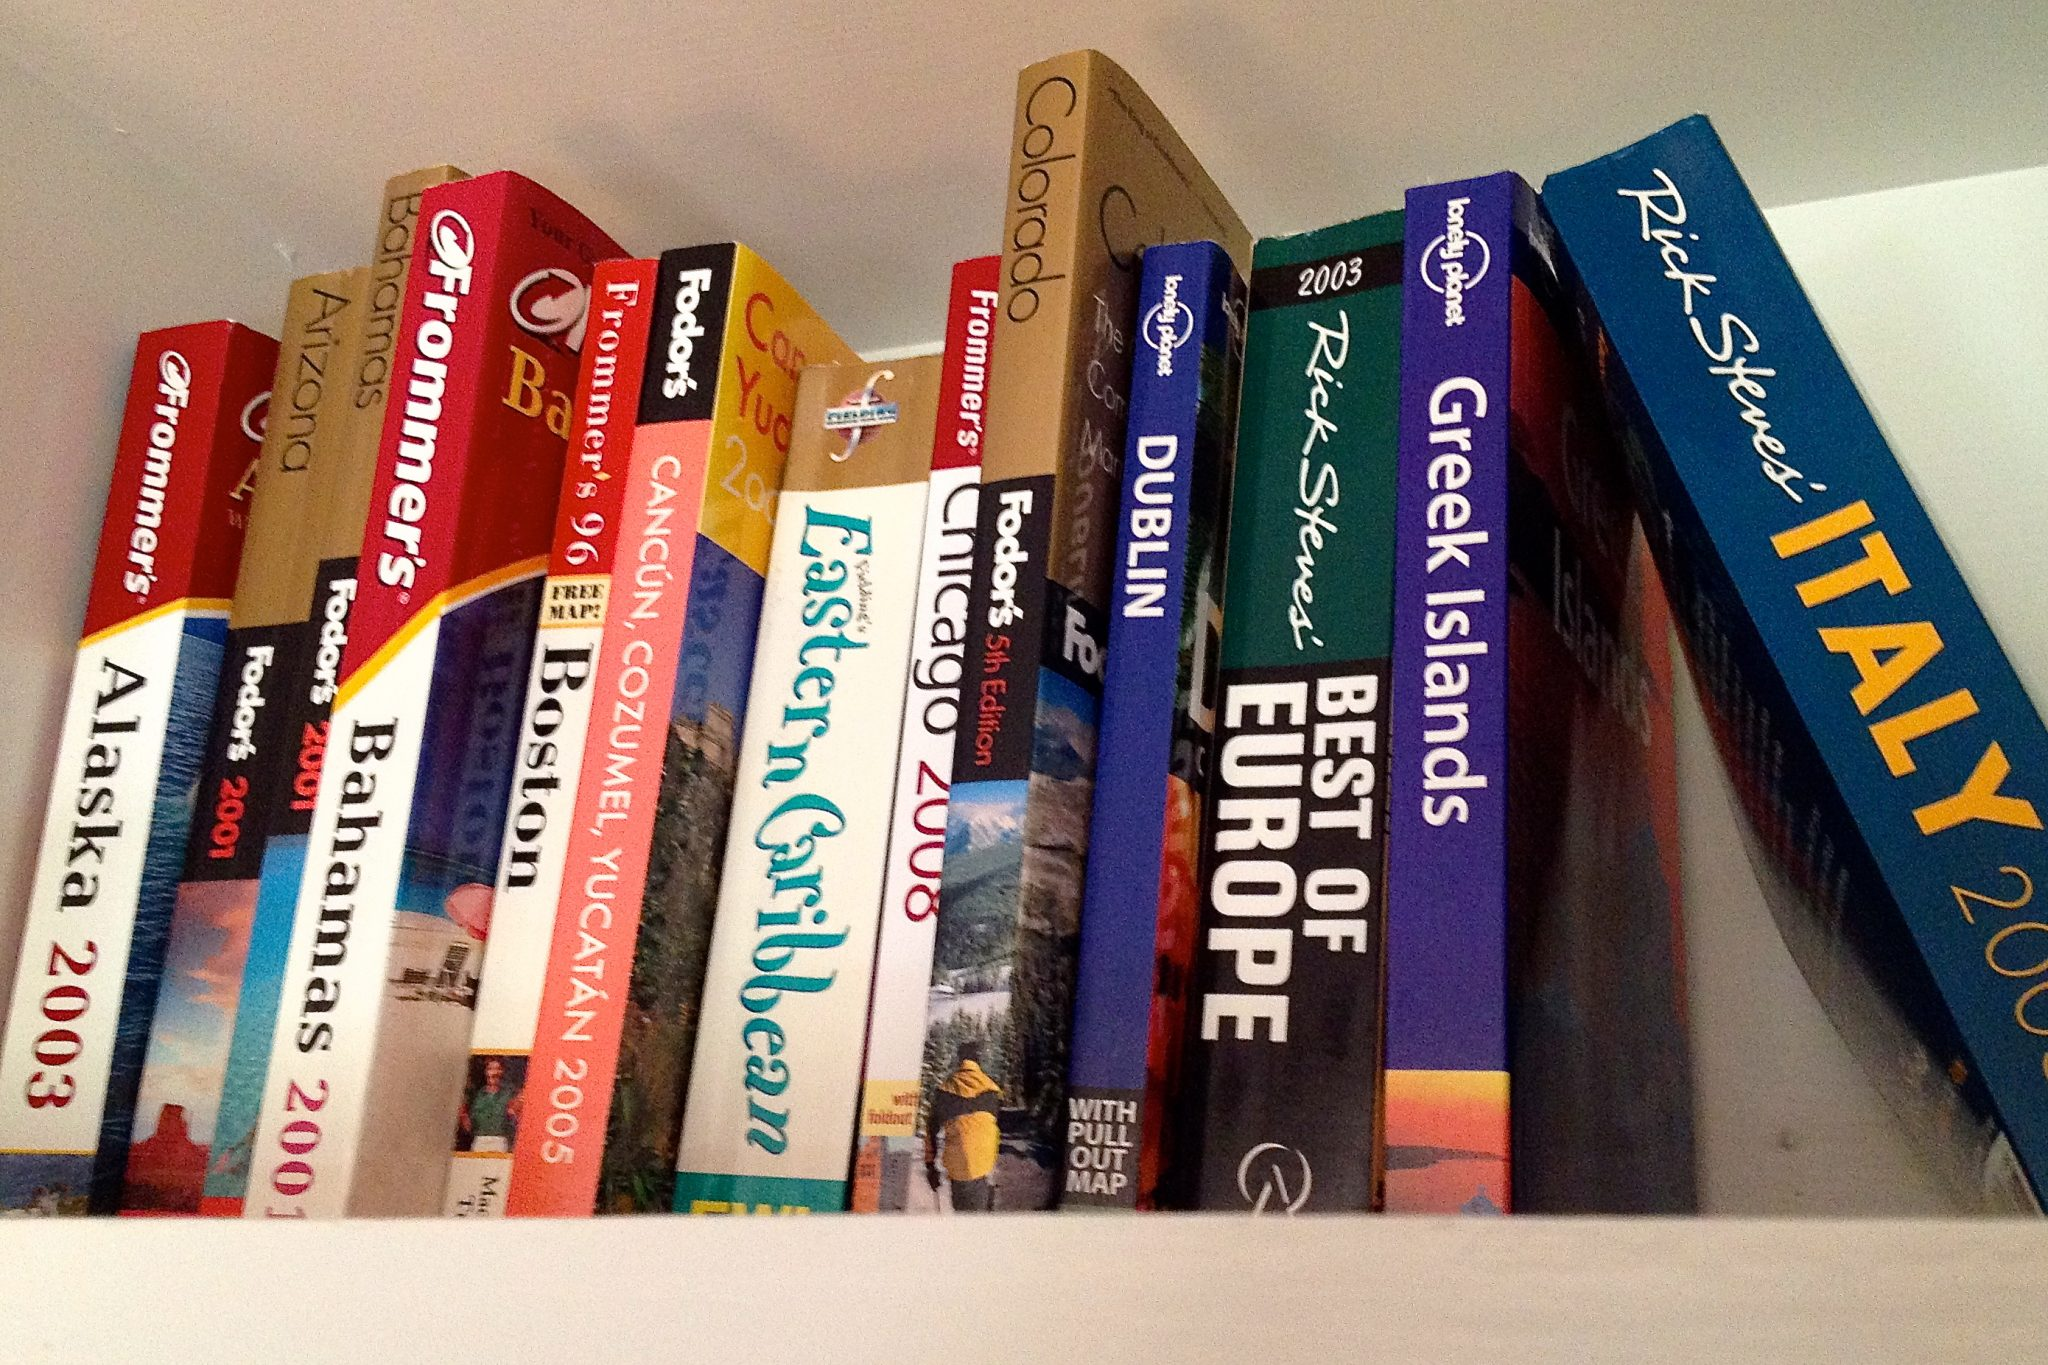 guide-books-on-shelf-two